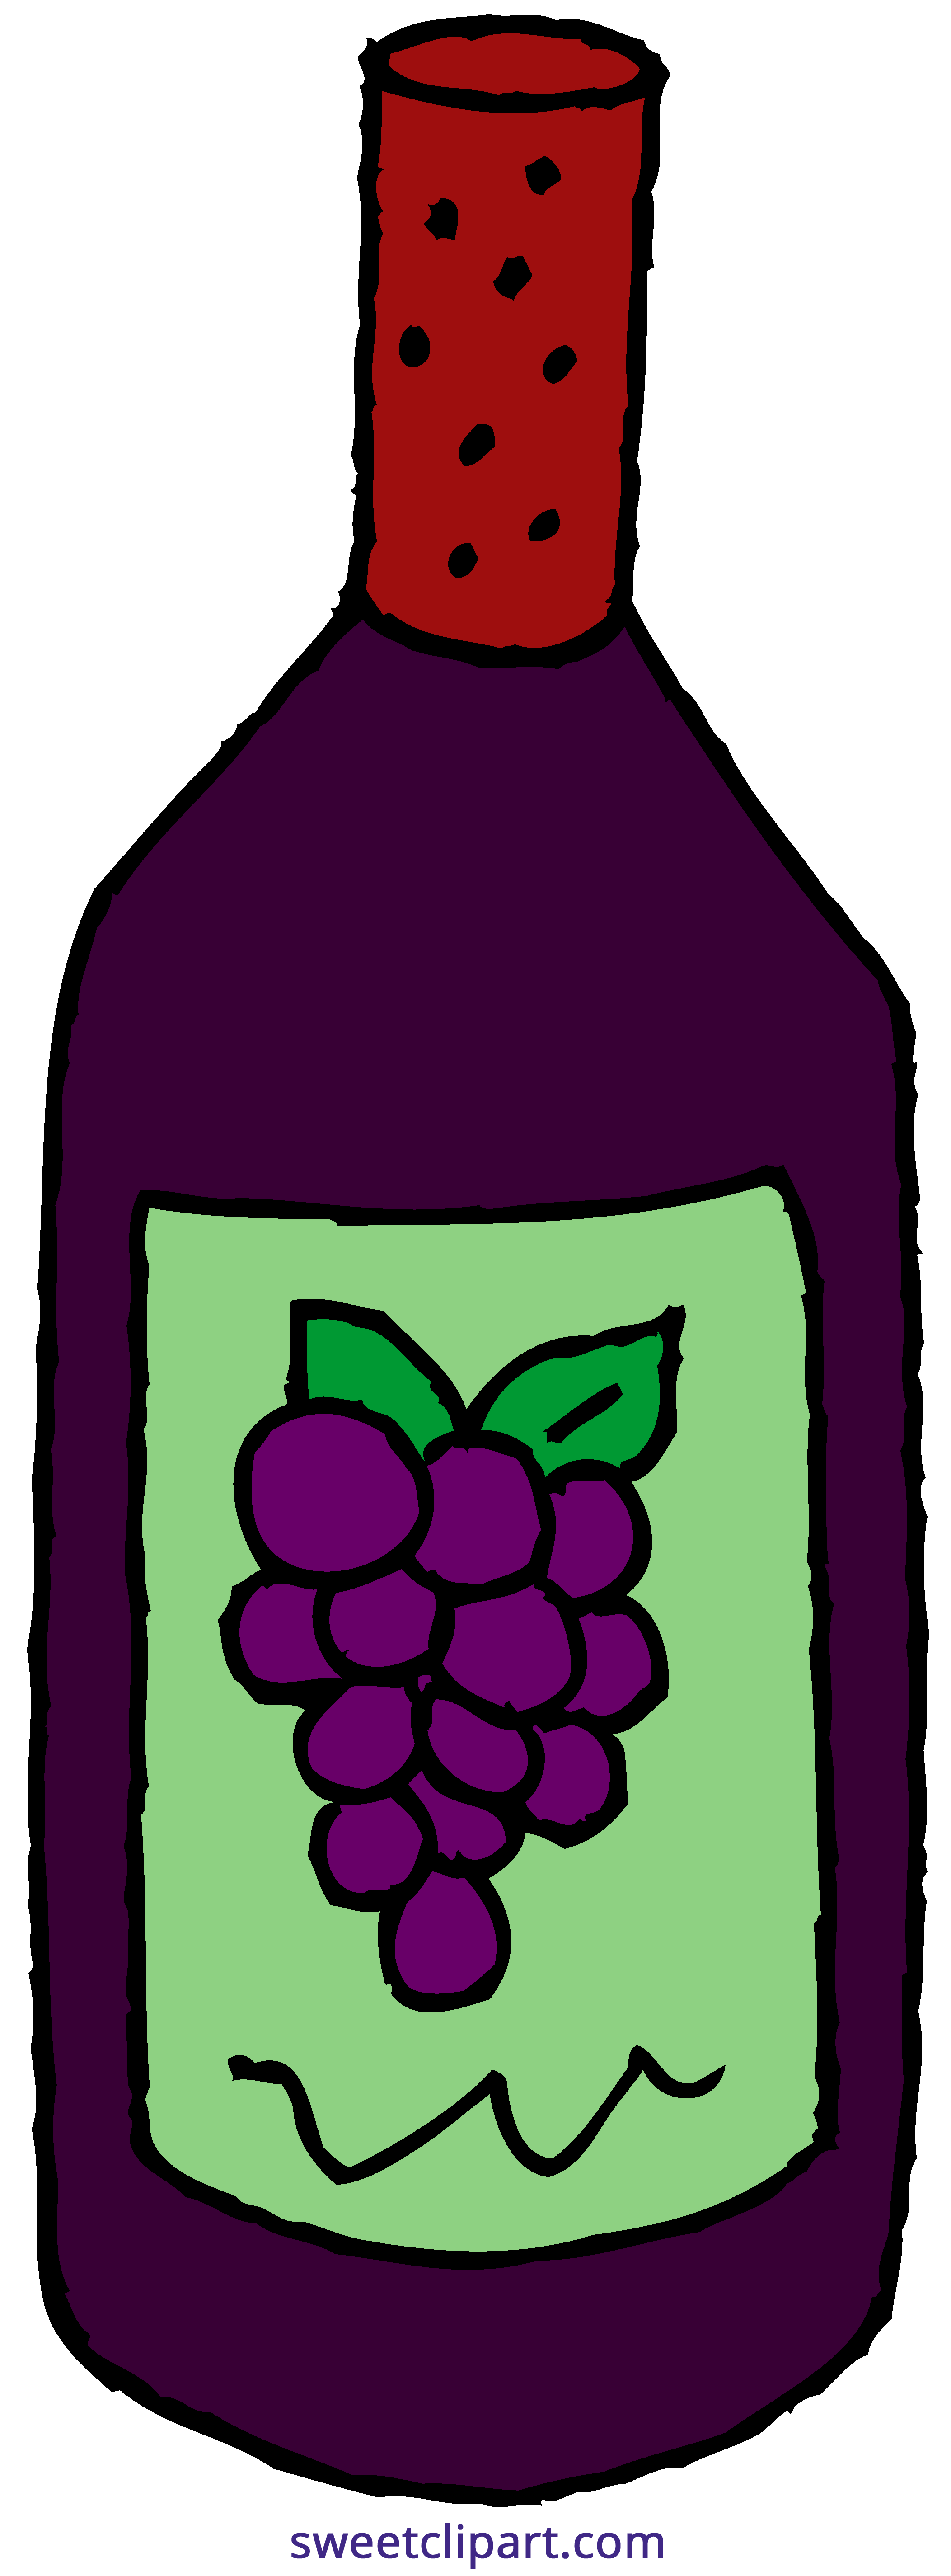 wine bottle clipart at getdrawings com free for personal use wine rh getdrawings com wine bottle clip art images free wine bottle clip art images free